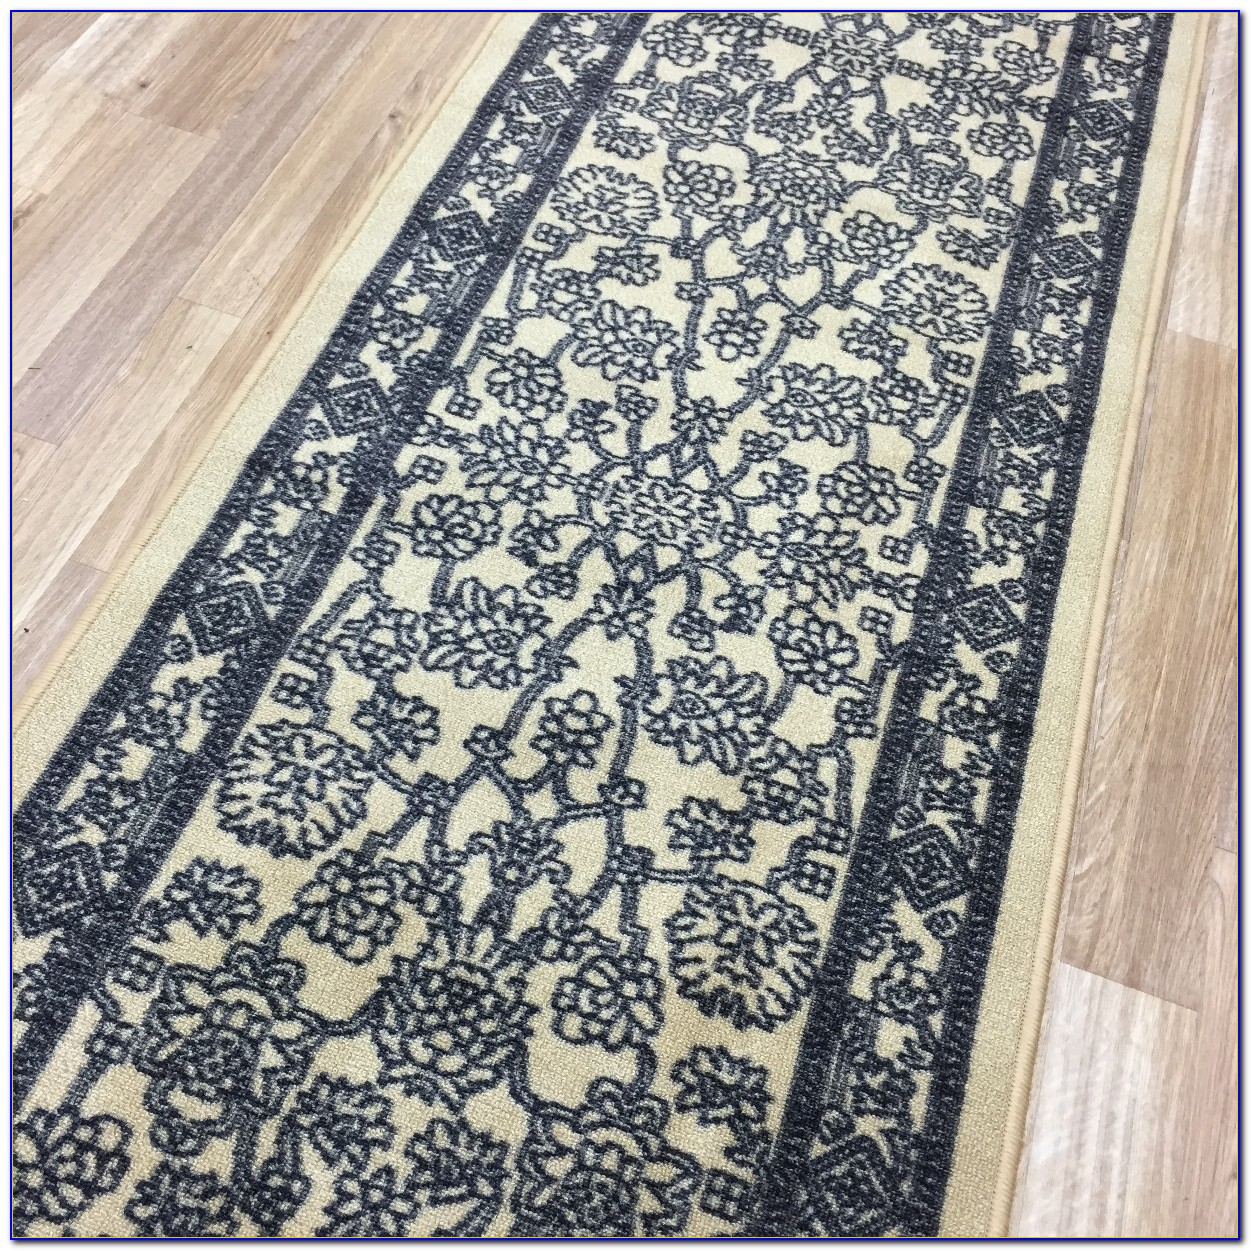 Rugs With Rubber Backing On Hardwood Floors